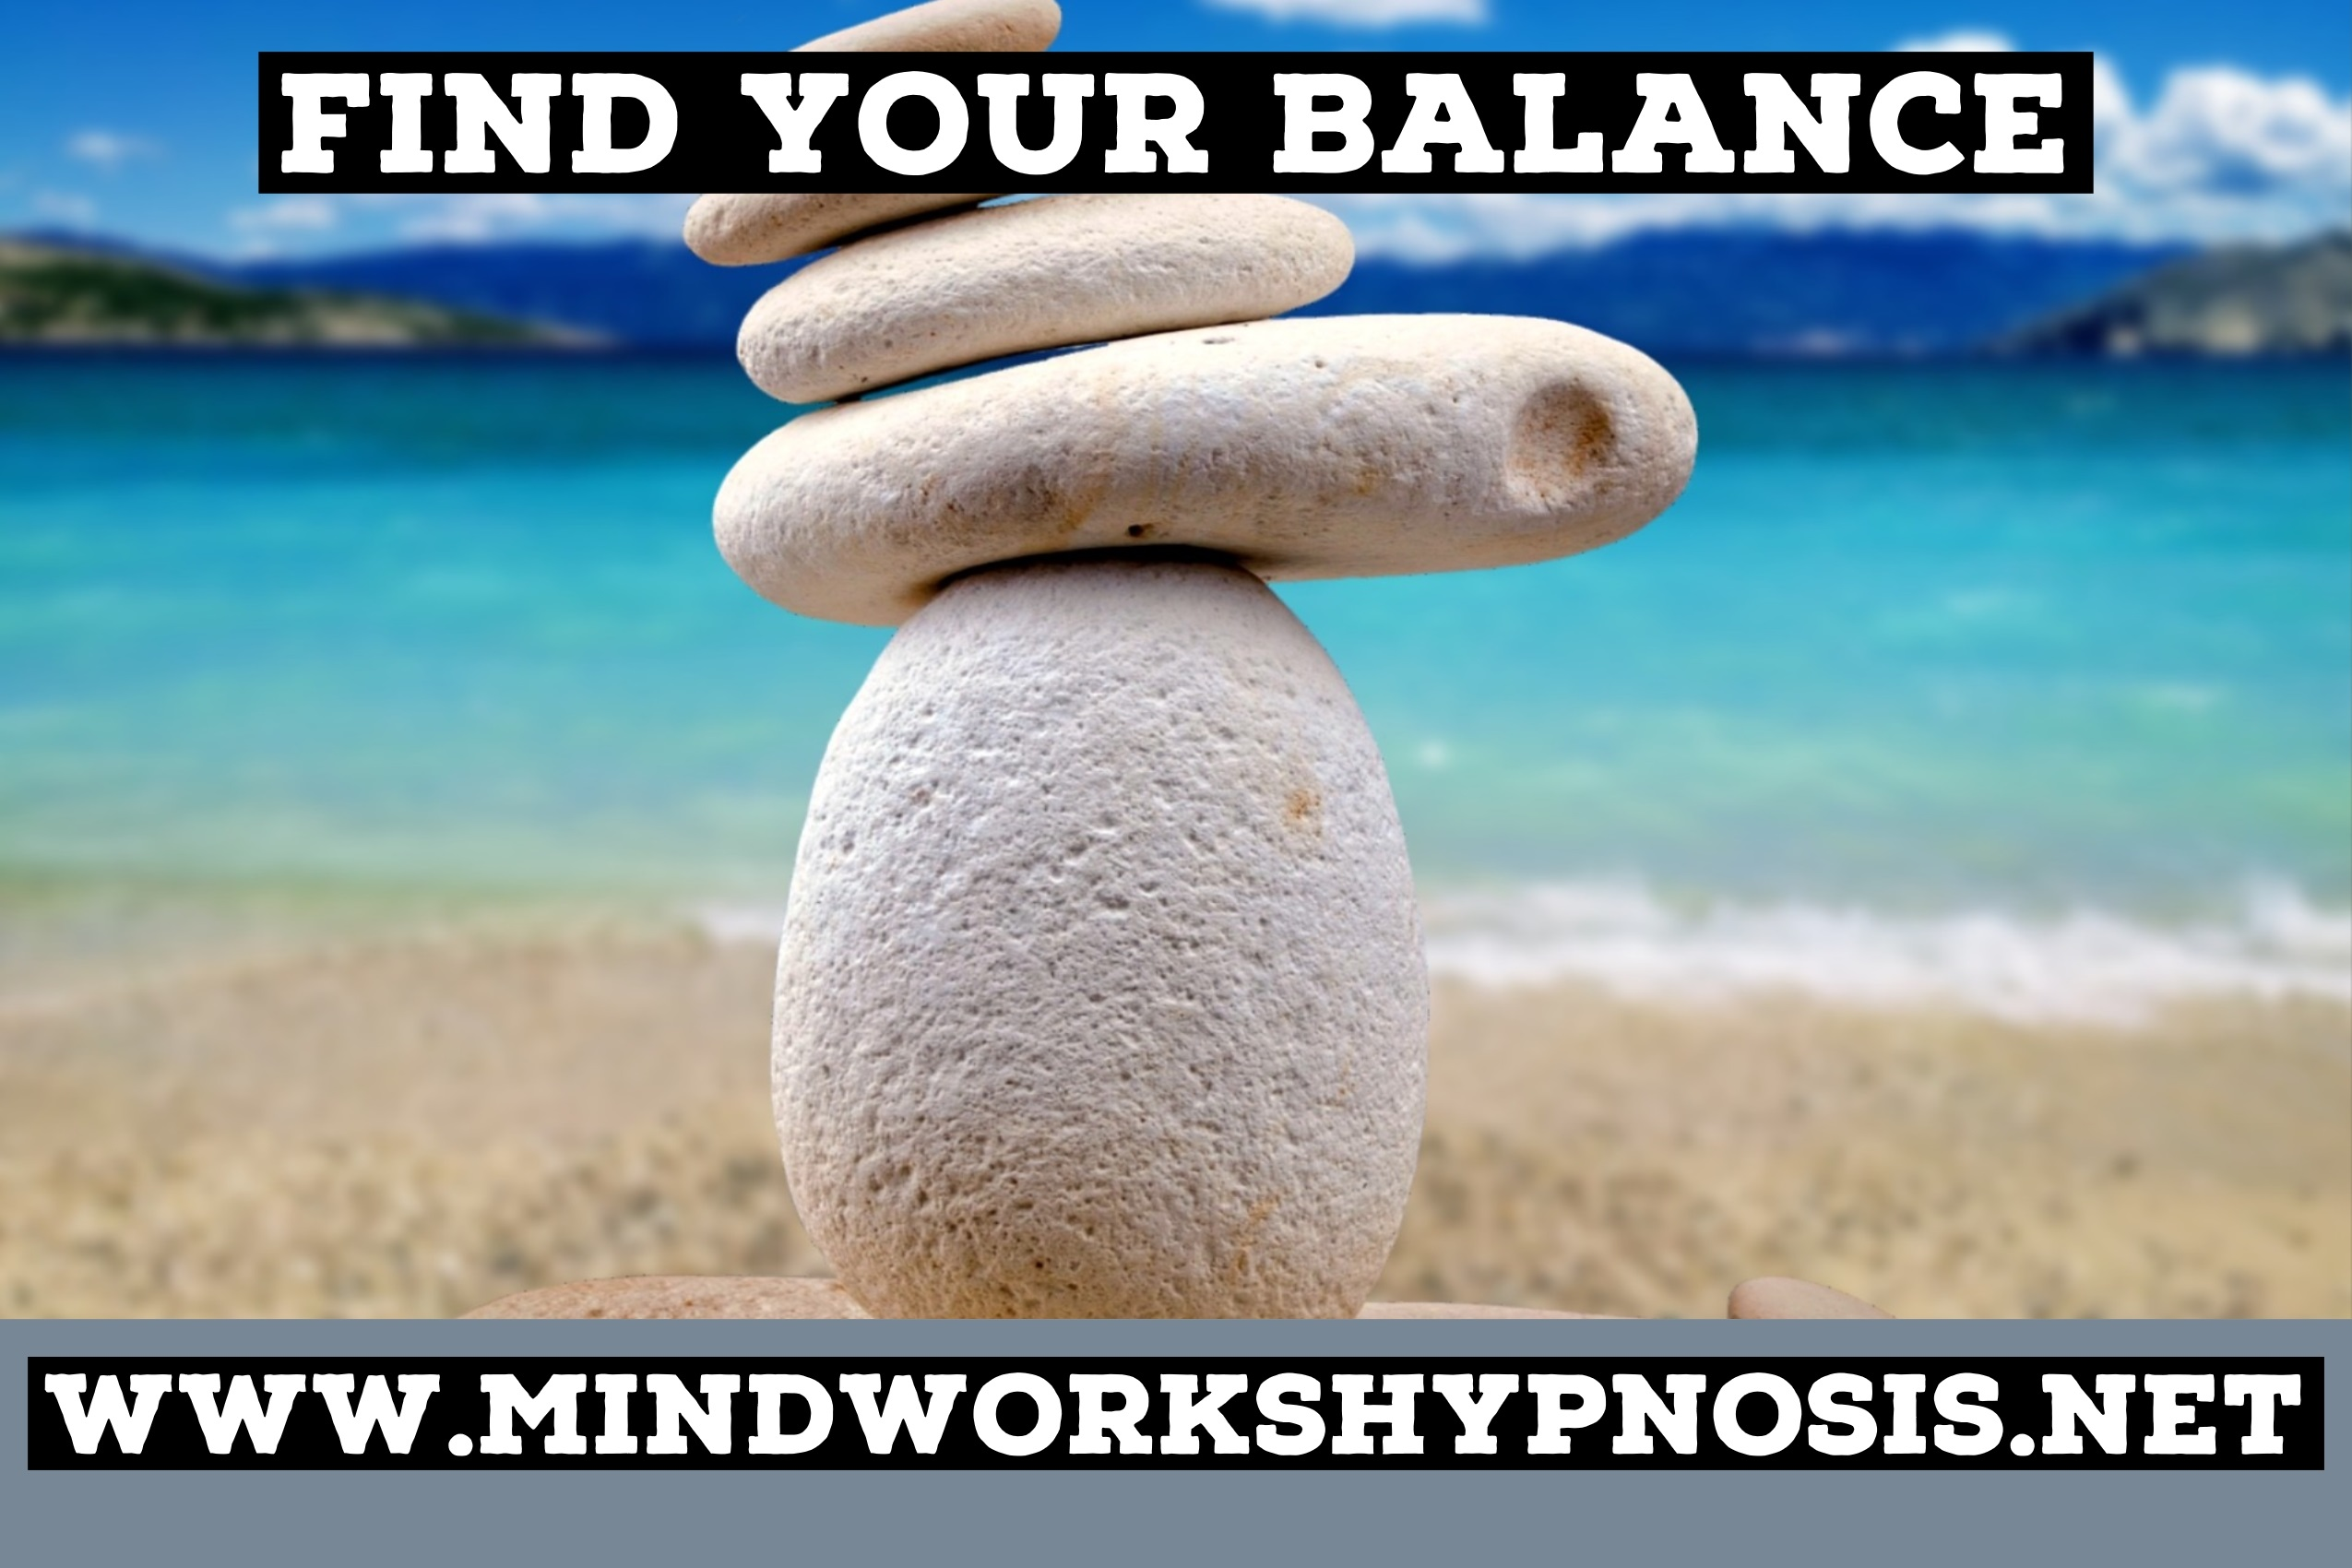 Find your life balance with skilled Mindworks Hypnosis & NLP.